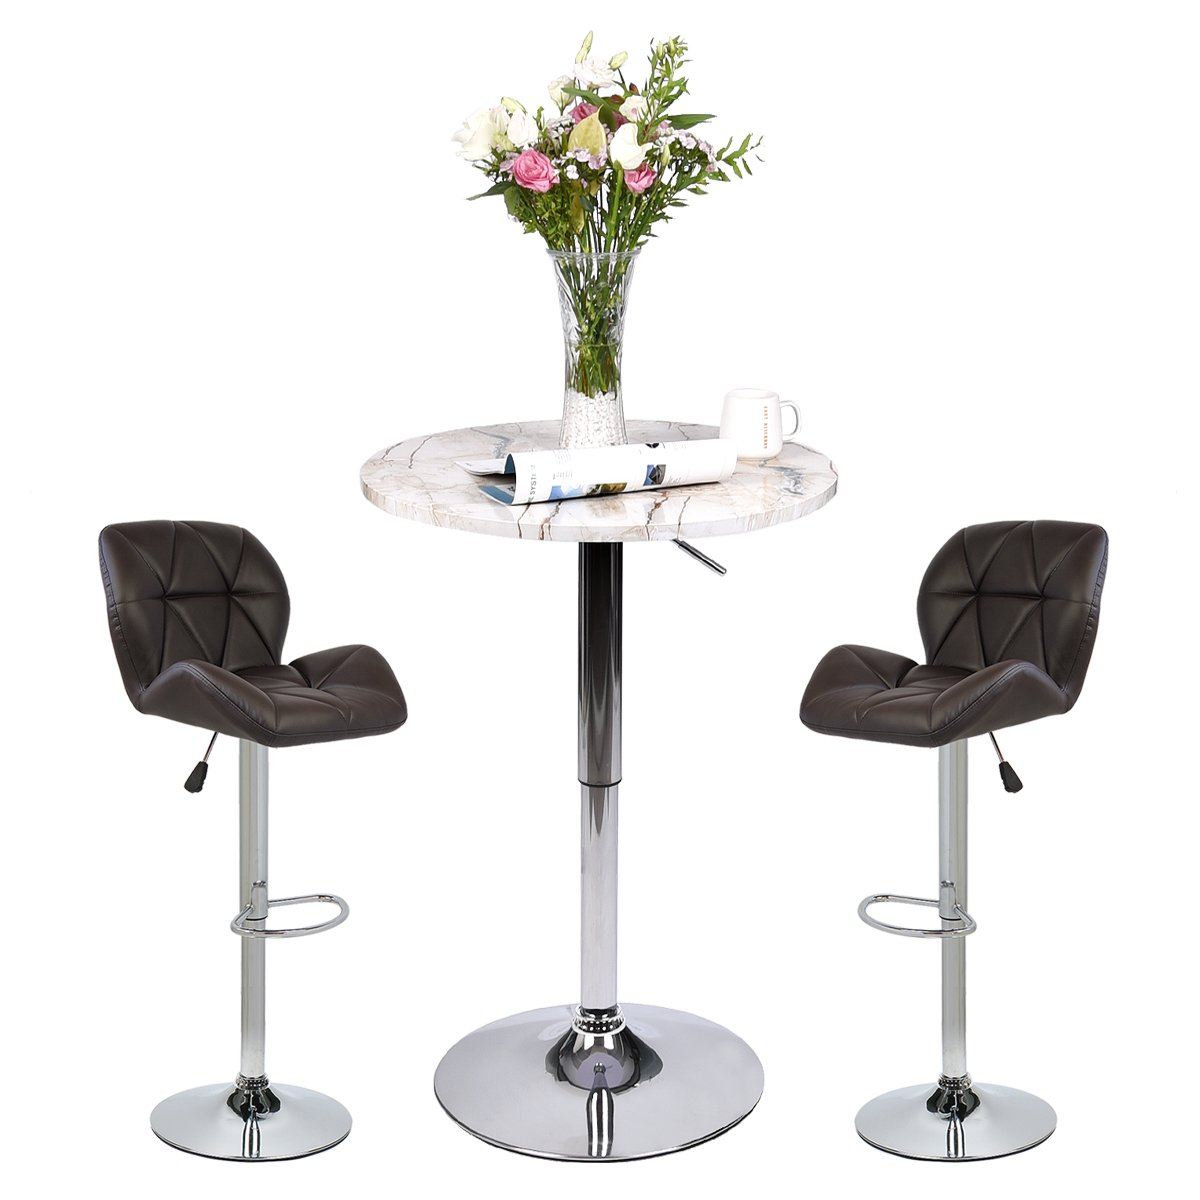 Pub Table Set 3 Piece - 24 inch Round Table with 2 Leatherette Chairs - Height Adjustable (Brown Barstools + Marble Stripe Pub Table)